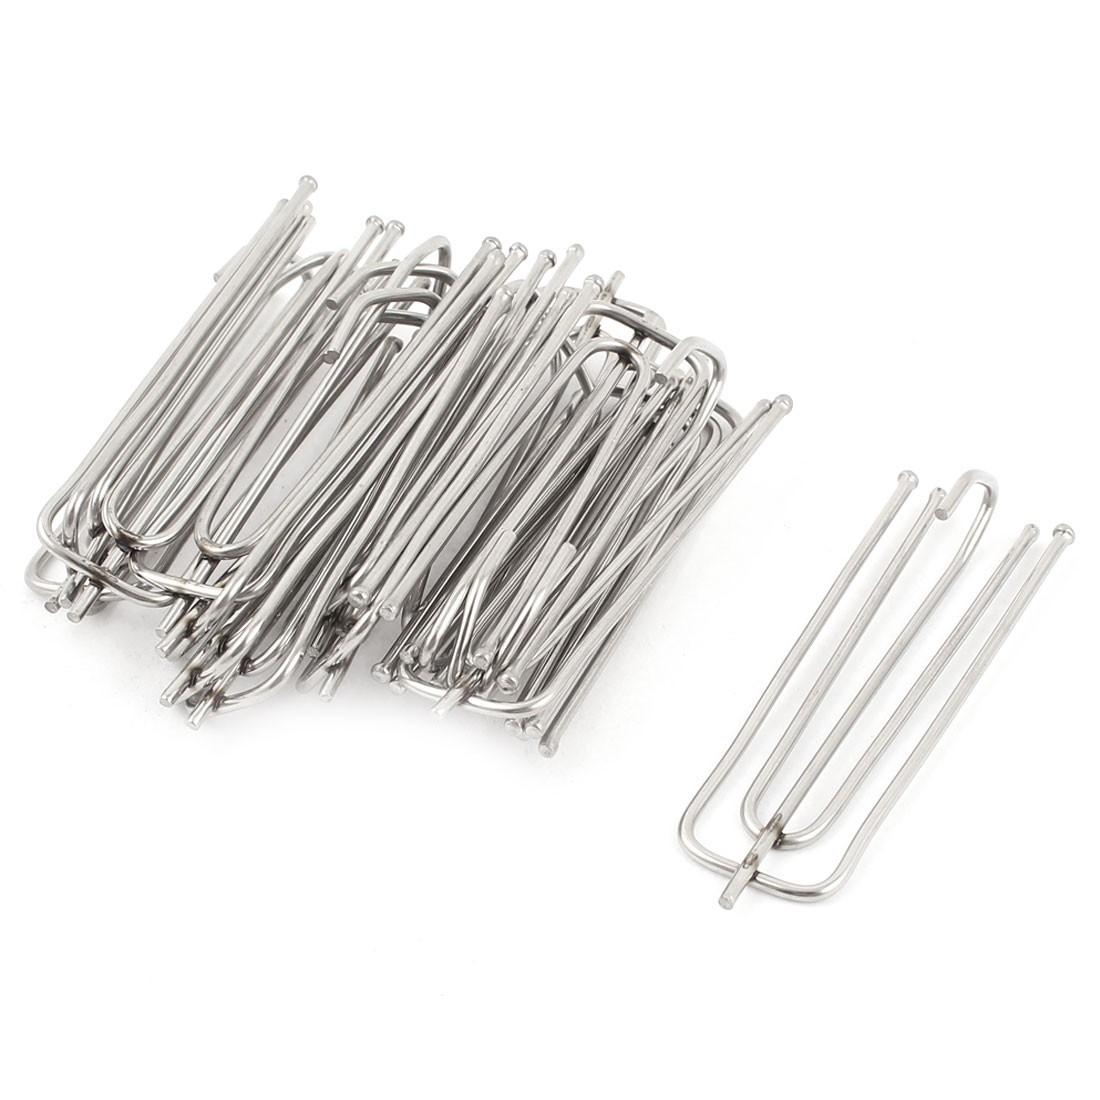 15 Pcs 7cm Length Stainless Steel Curtain Pleat Prong Forks Hooks